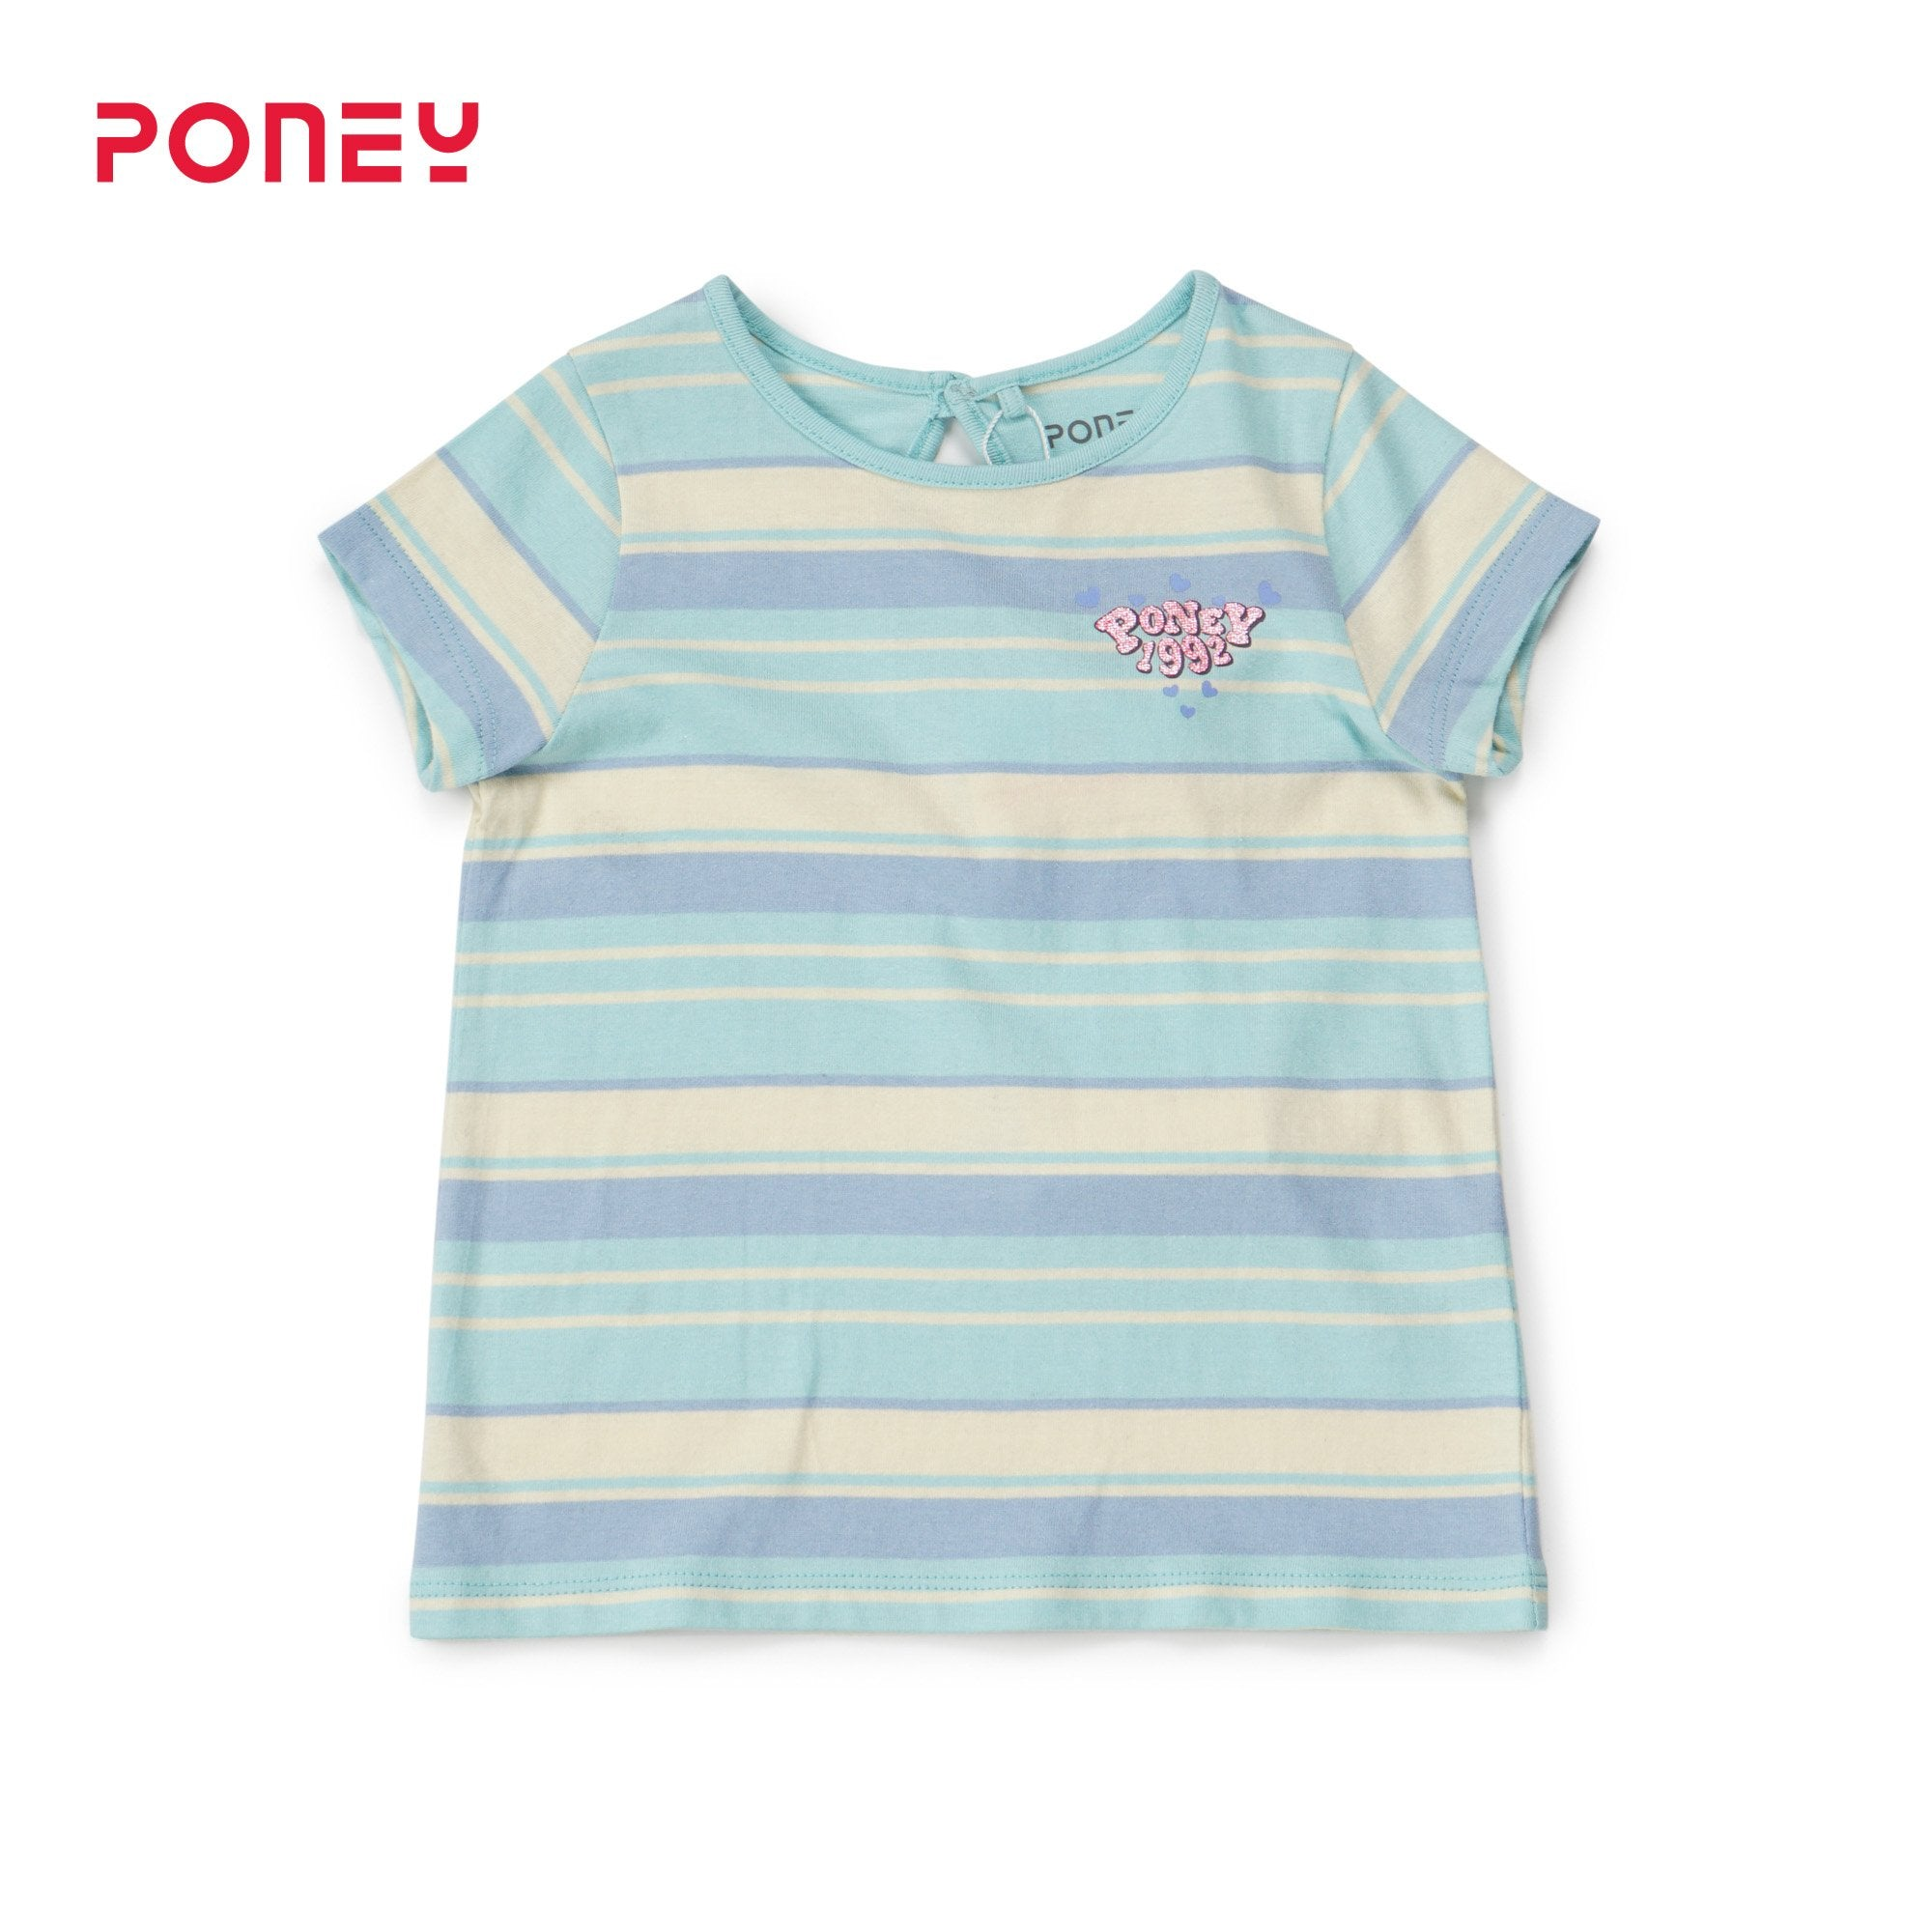 Poney Girls ShortSleeve Tee 8289 (6mths-12yrs)